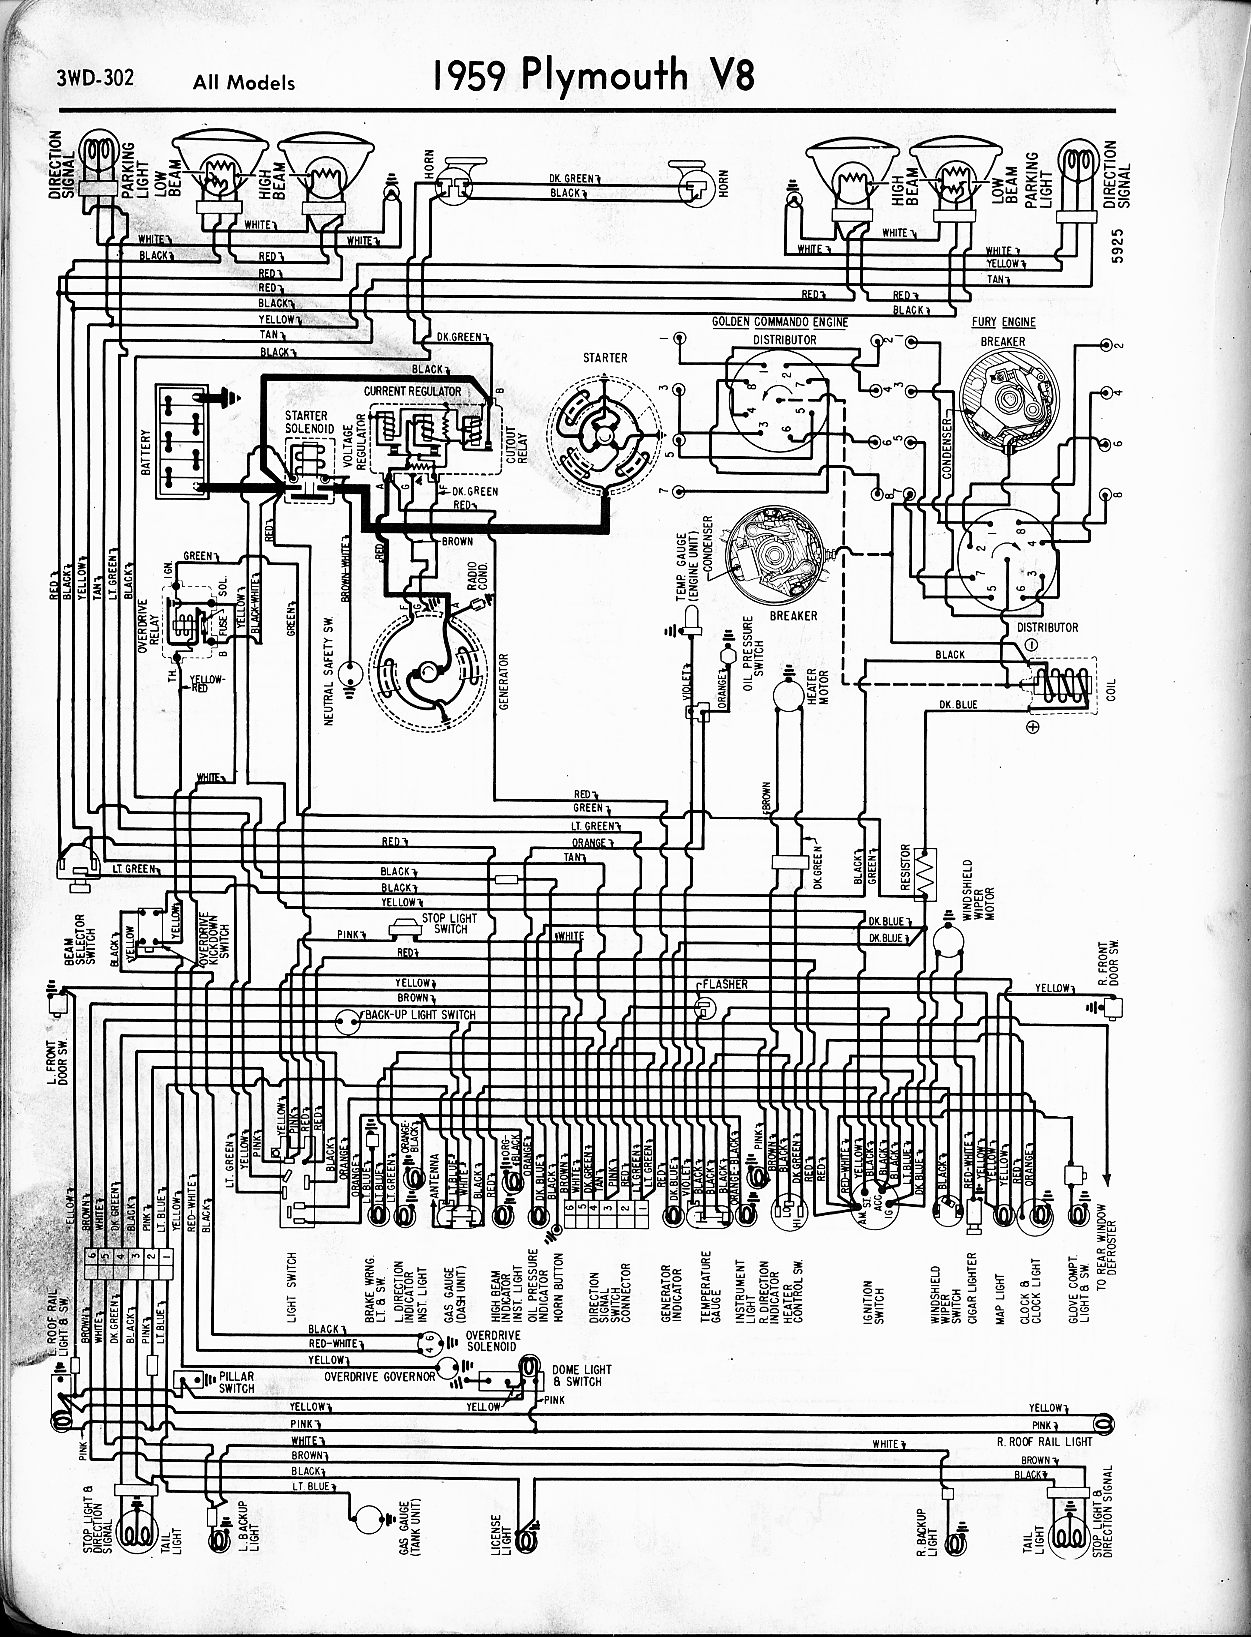 1937 plymouth wiring diagram best wiring library GEM-CAR E825 Wiring-Diagram Heater 1956 1965 plymouth wiring the old car manual project 1955 plymouth wiring diagram 1951 plymouth wiring